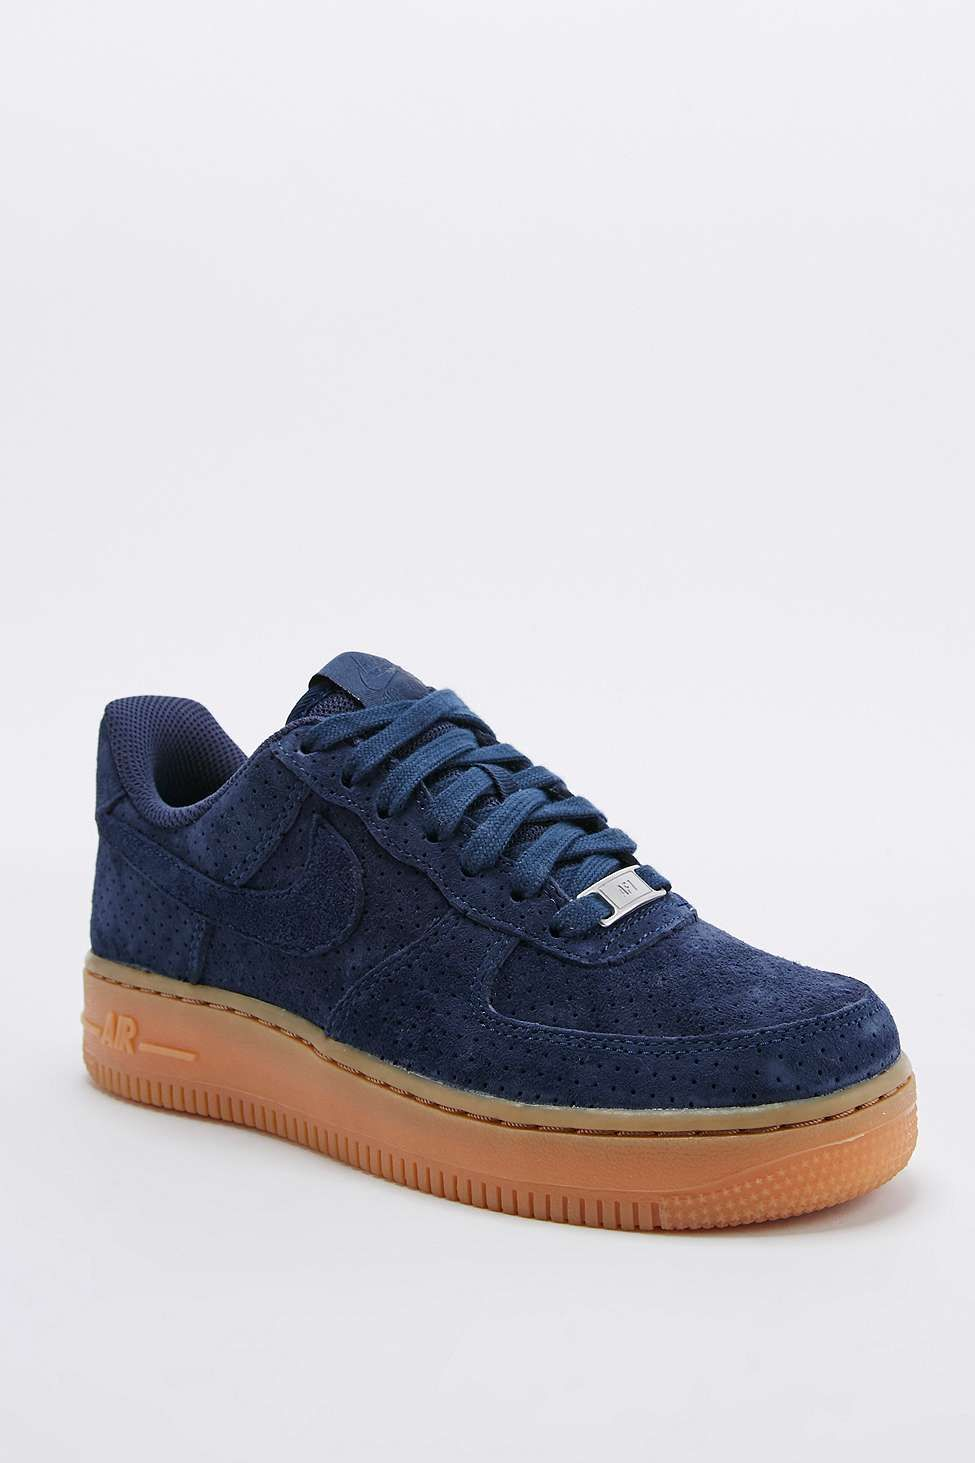 air force one daim noir femme